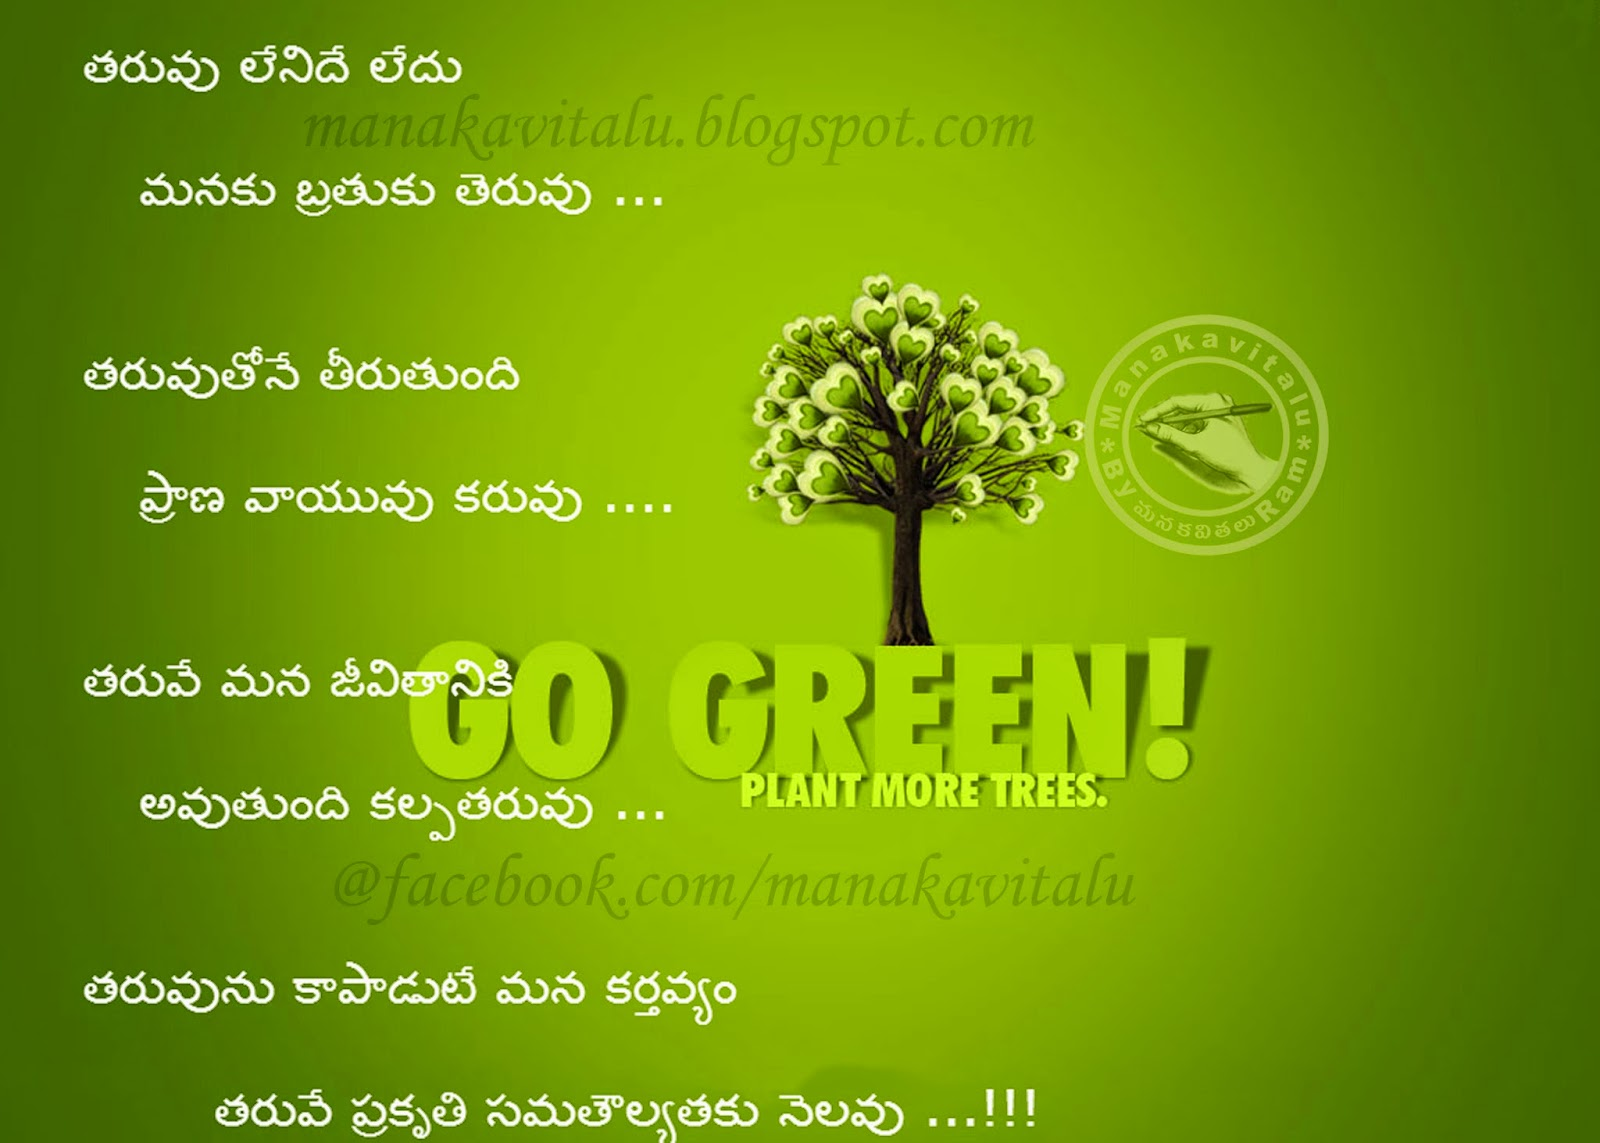 a quote about tree images by Manakavitalu